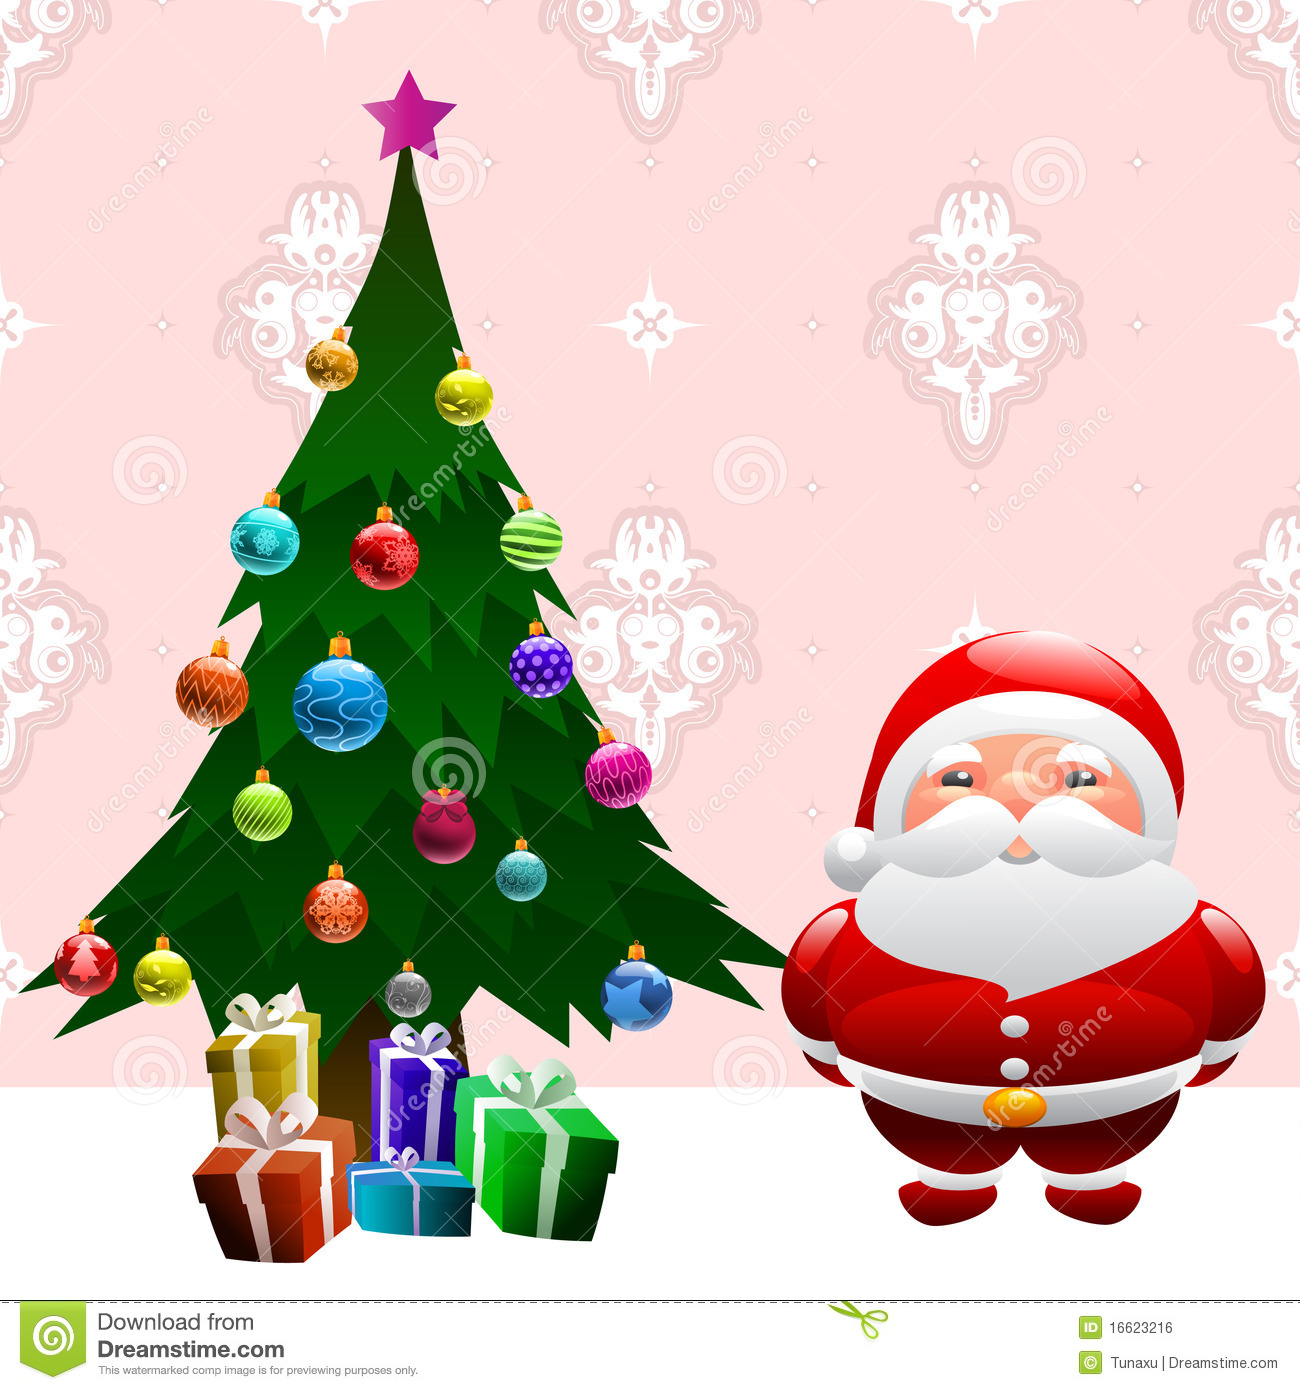 Christmas Tree And Santa Claus Royalty Free Stock Image - Image ...